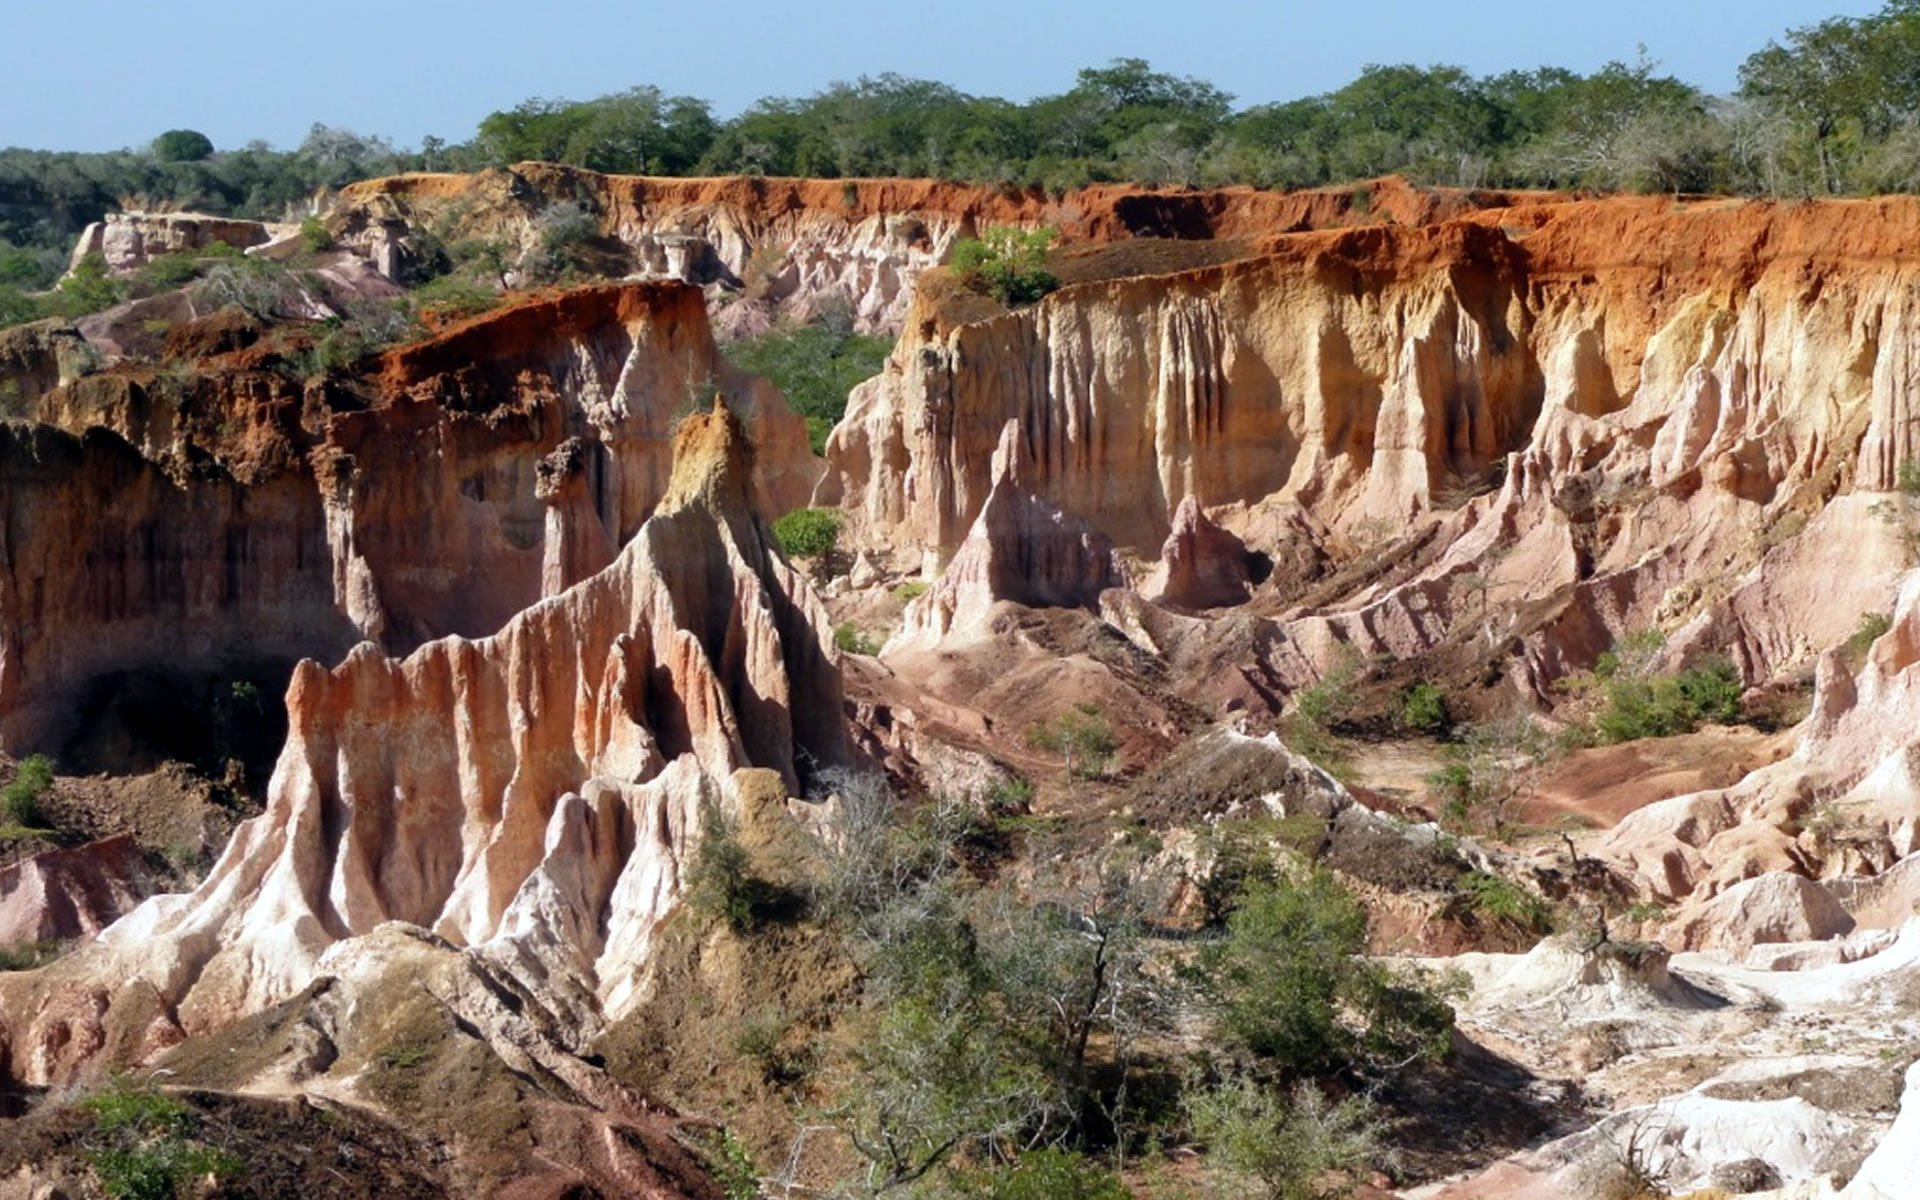 Lonely Planet once described the Marafa Depression as 'the most underrated site on the coast'. Those who visit this amazing anomaly, quickly agree.